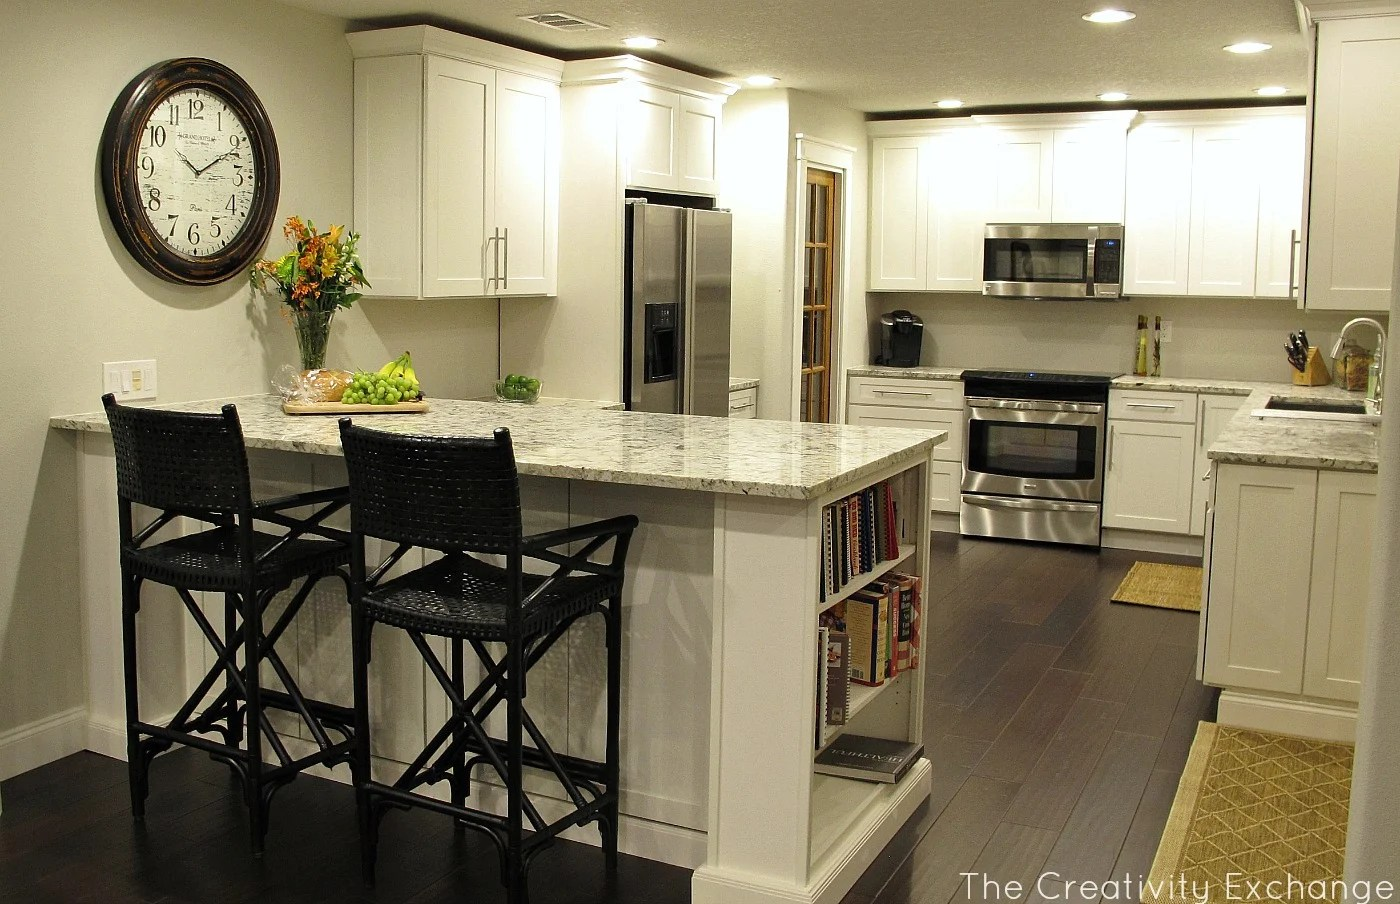 cousin franks amazing kitchen remodel before after split level kitchen remodel Amazing before after kitchen remodel The Creativity Exchange